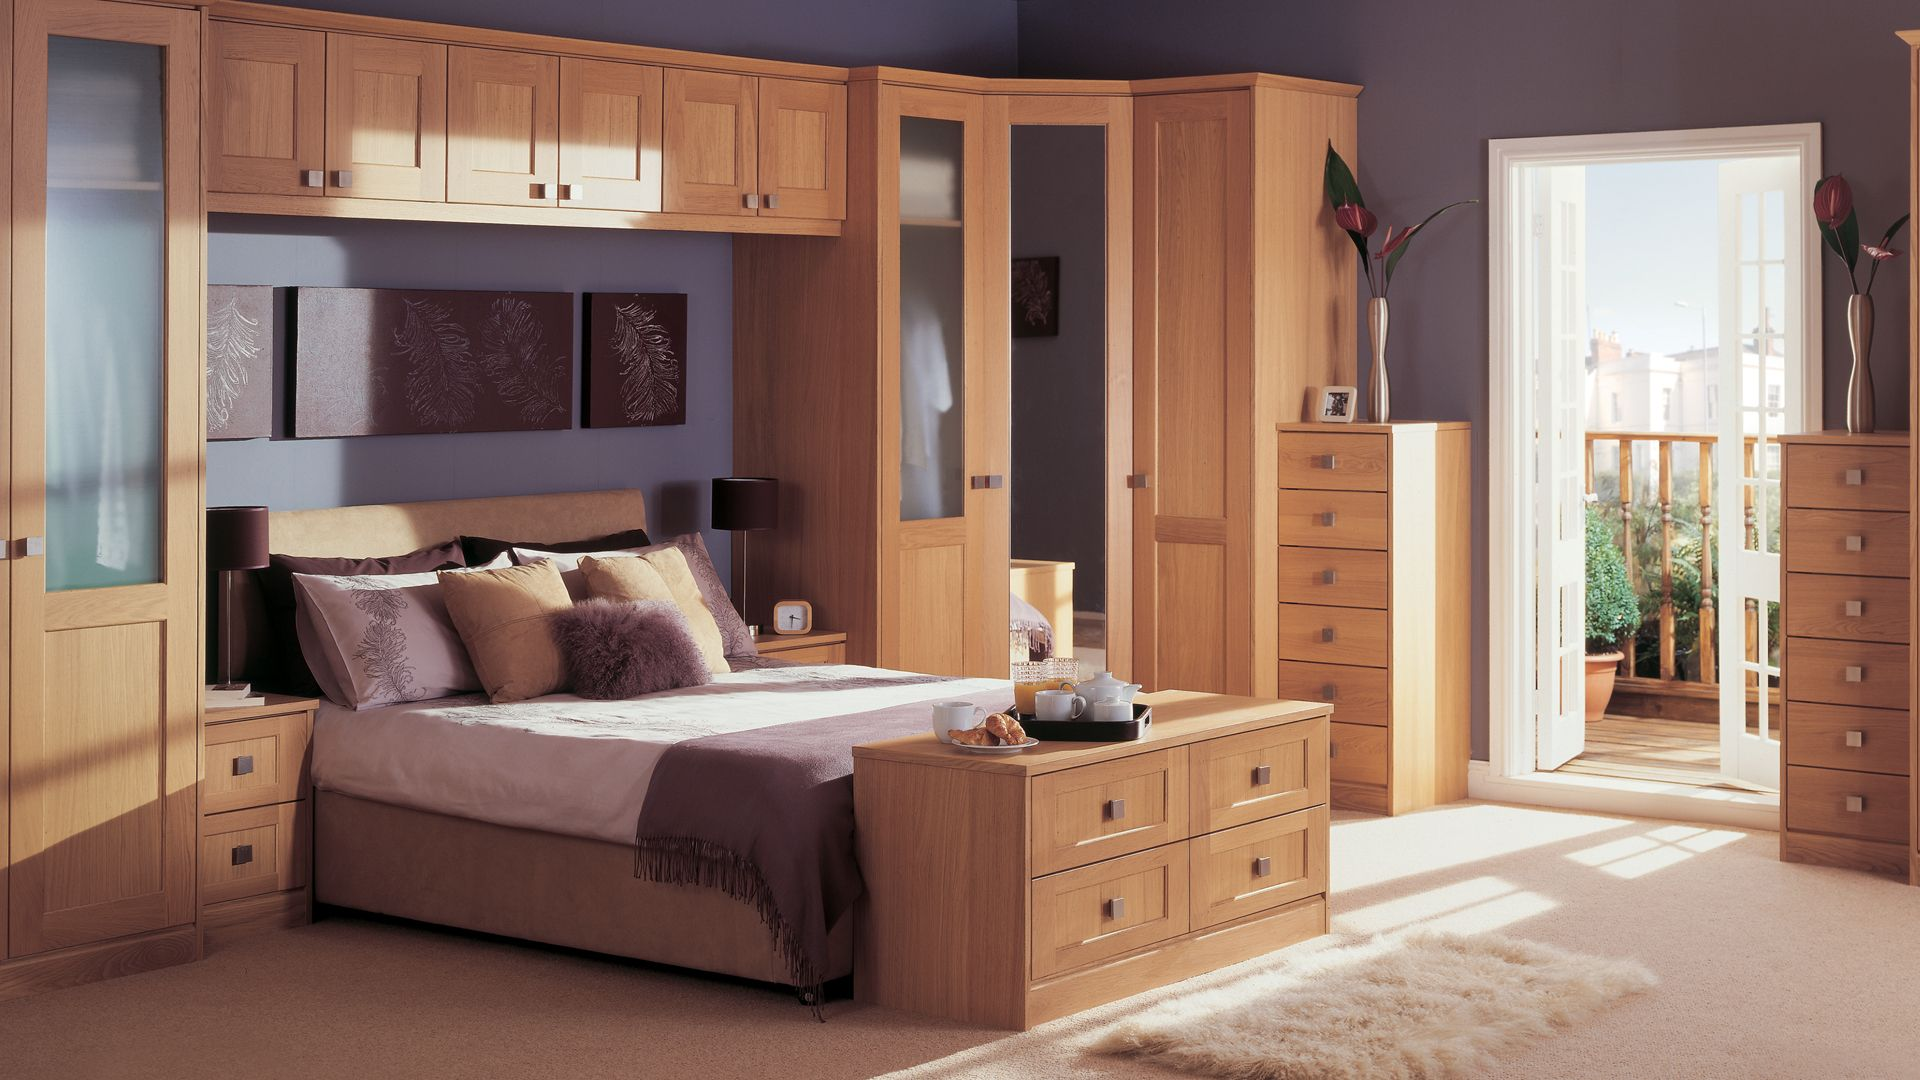 Shaker Style Bedroom Furniture Shaker Lacquered Oak The Solid Oak Shaker Style Door Makes This